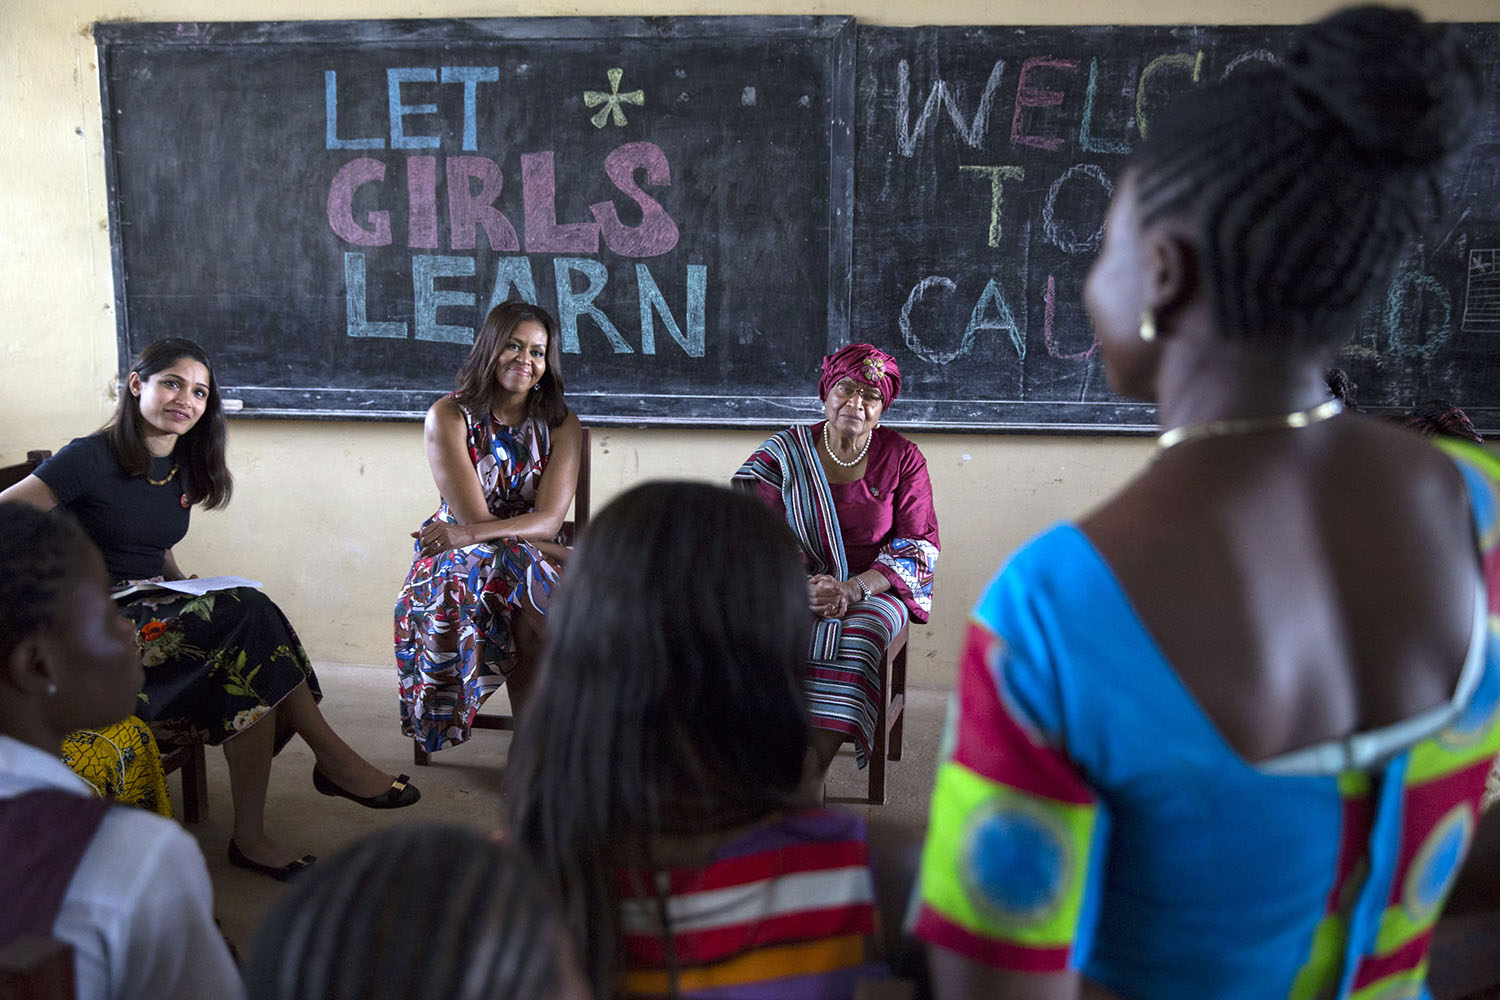 First Lady Michelle Obama participates in a roundtable discussion with Freida Pinto and students, in support of the Let Girls Learn initiative, at R.S. Caulfield Senior High School in Unification Town, Liberia, June 27, 2016. (Official White House Photo by Amanda Lucidon)